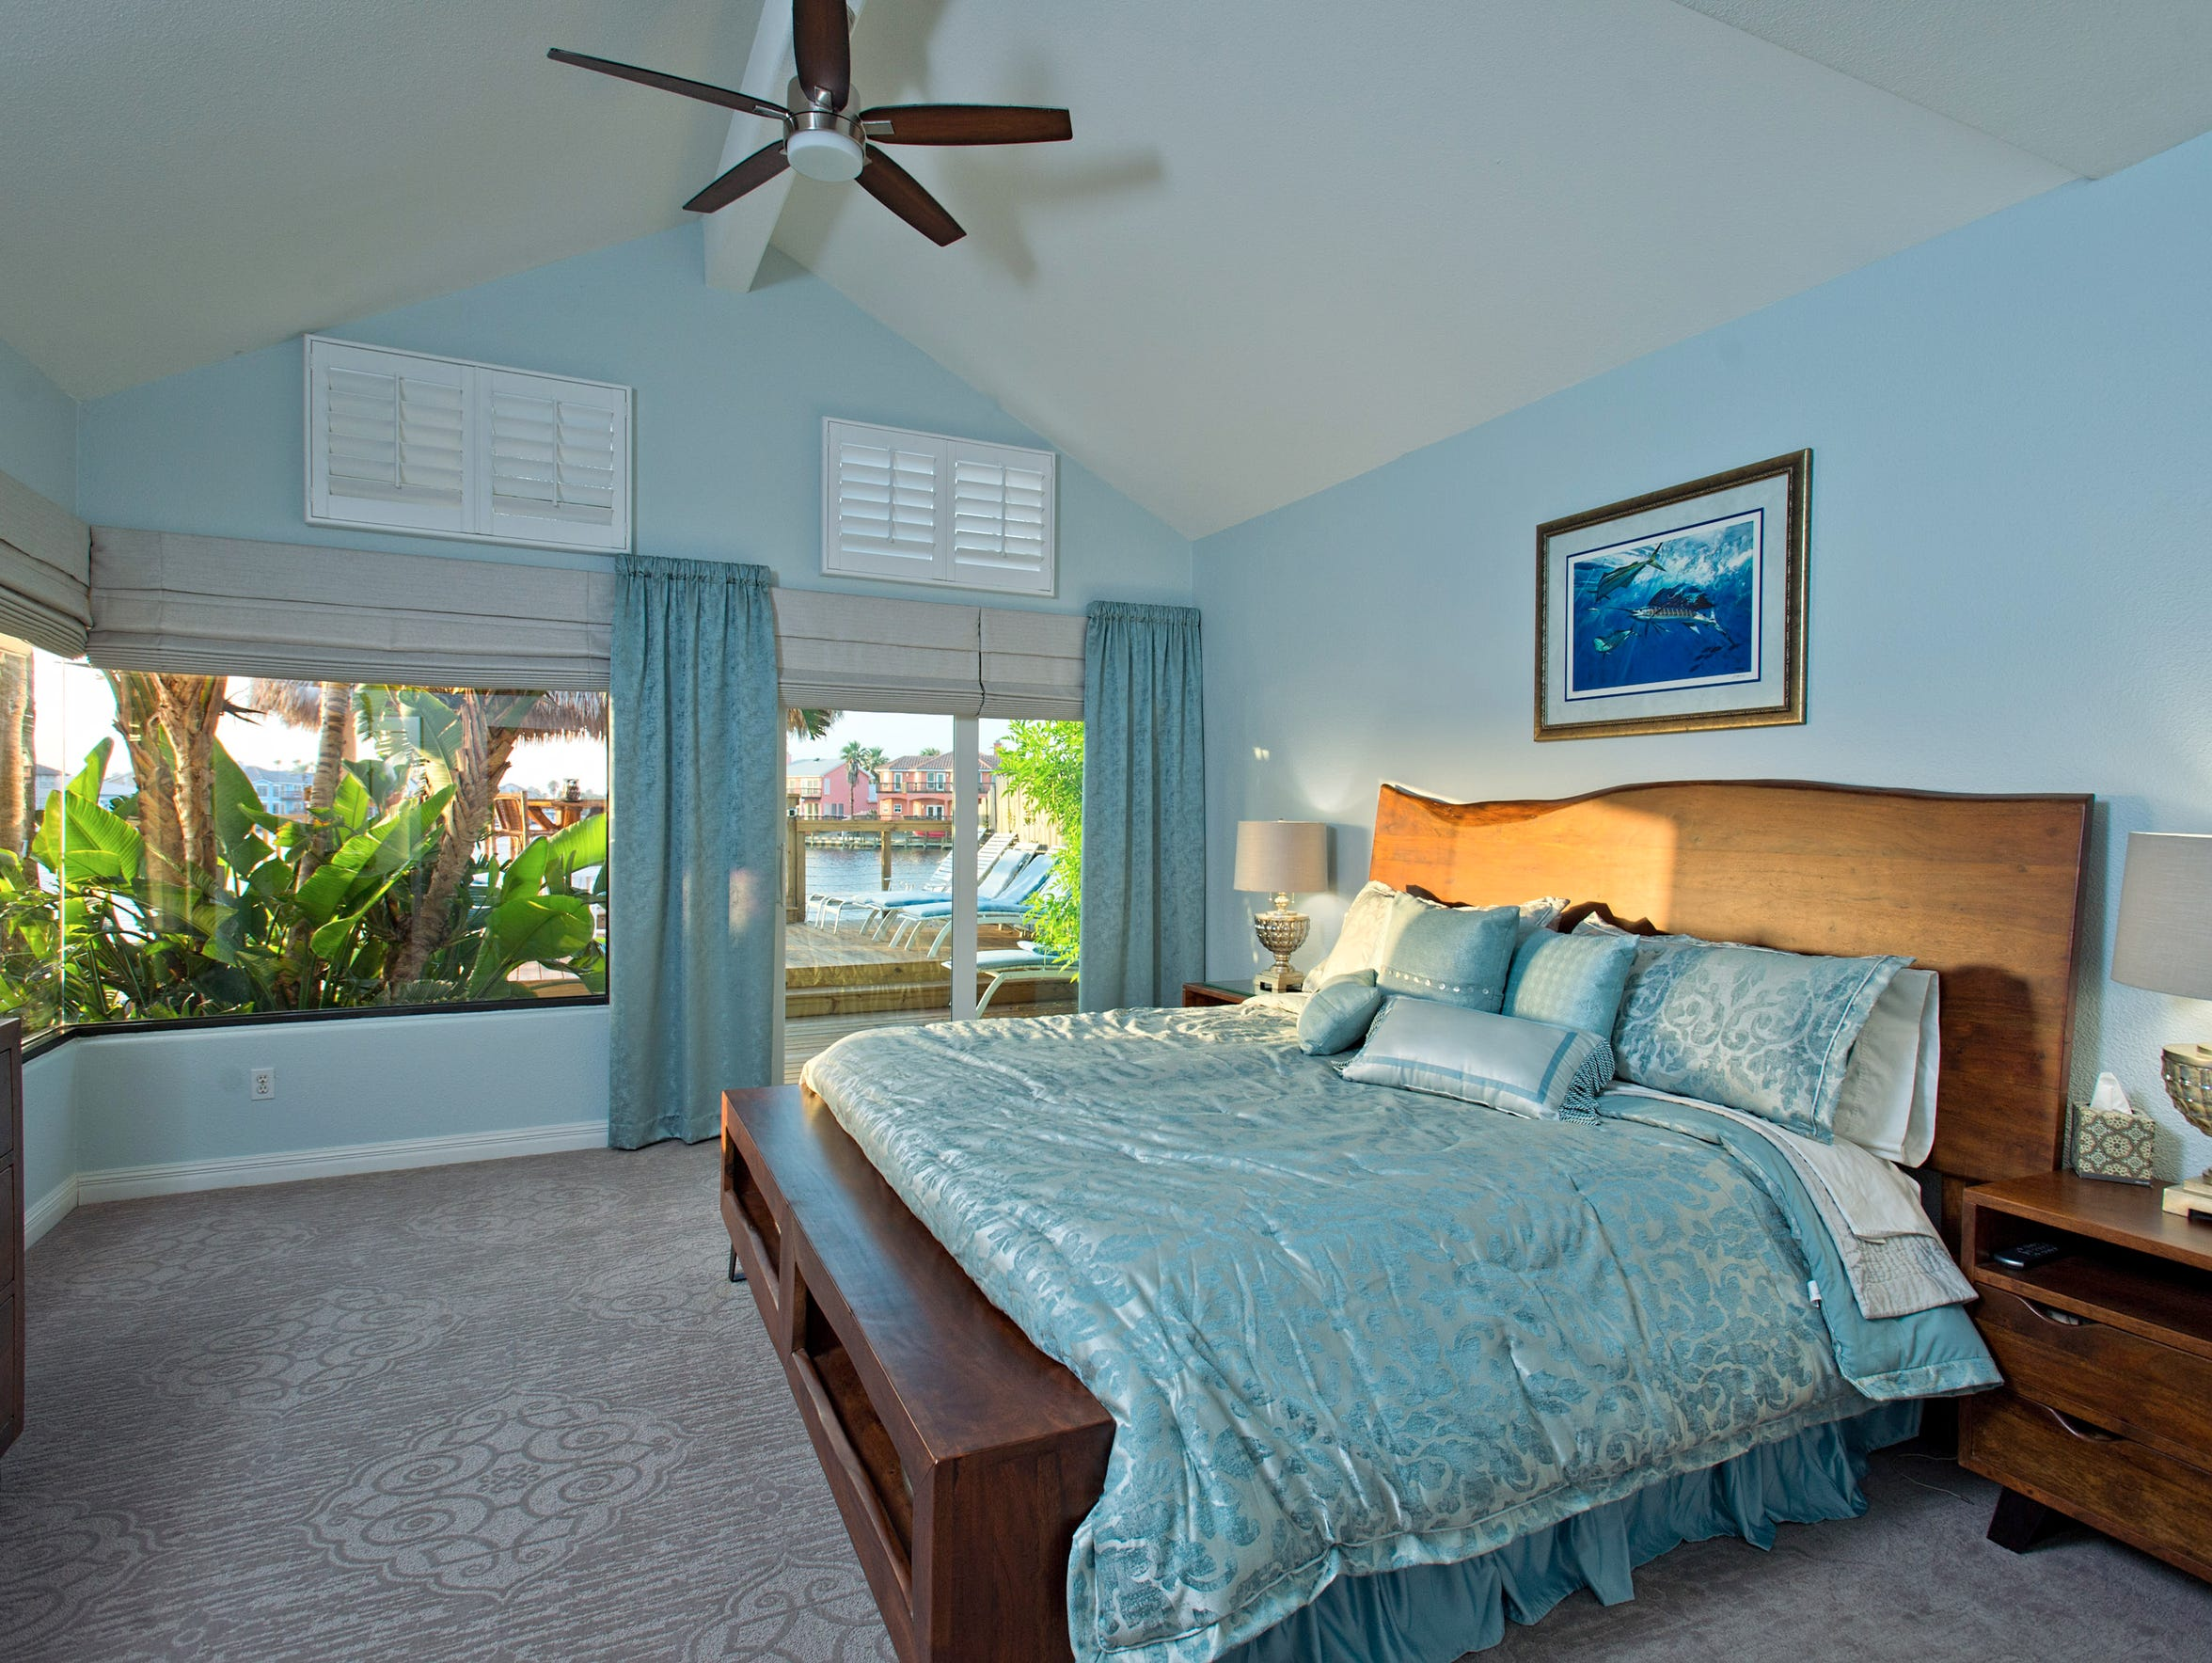 The spacious first floor master bedroom takes in water